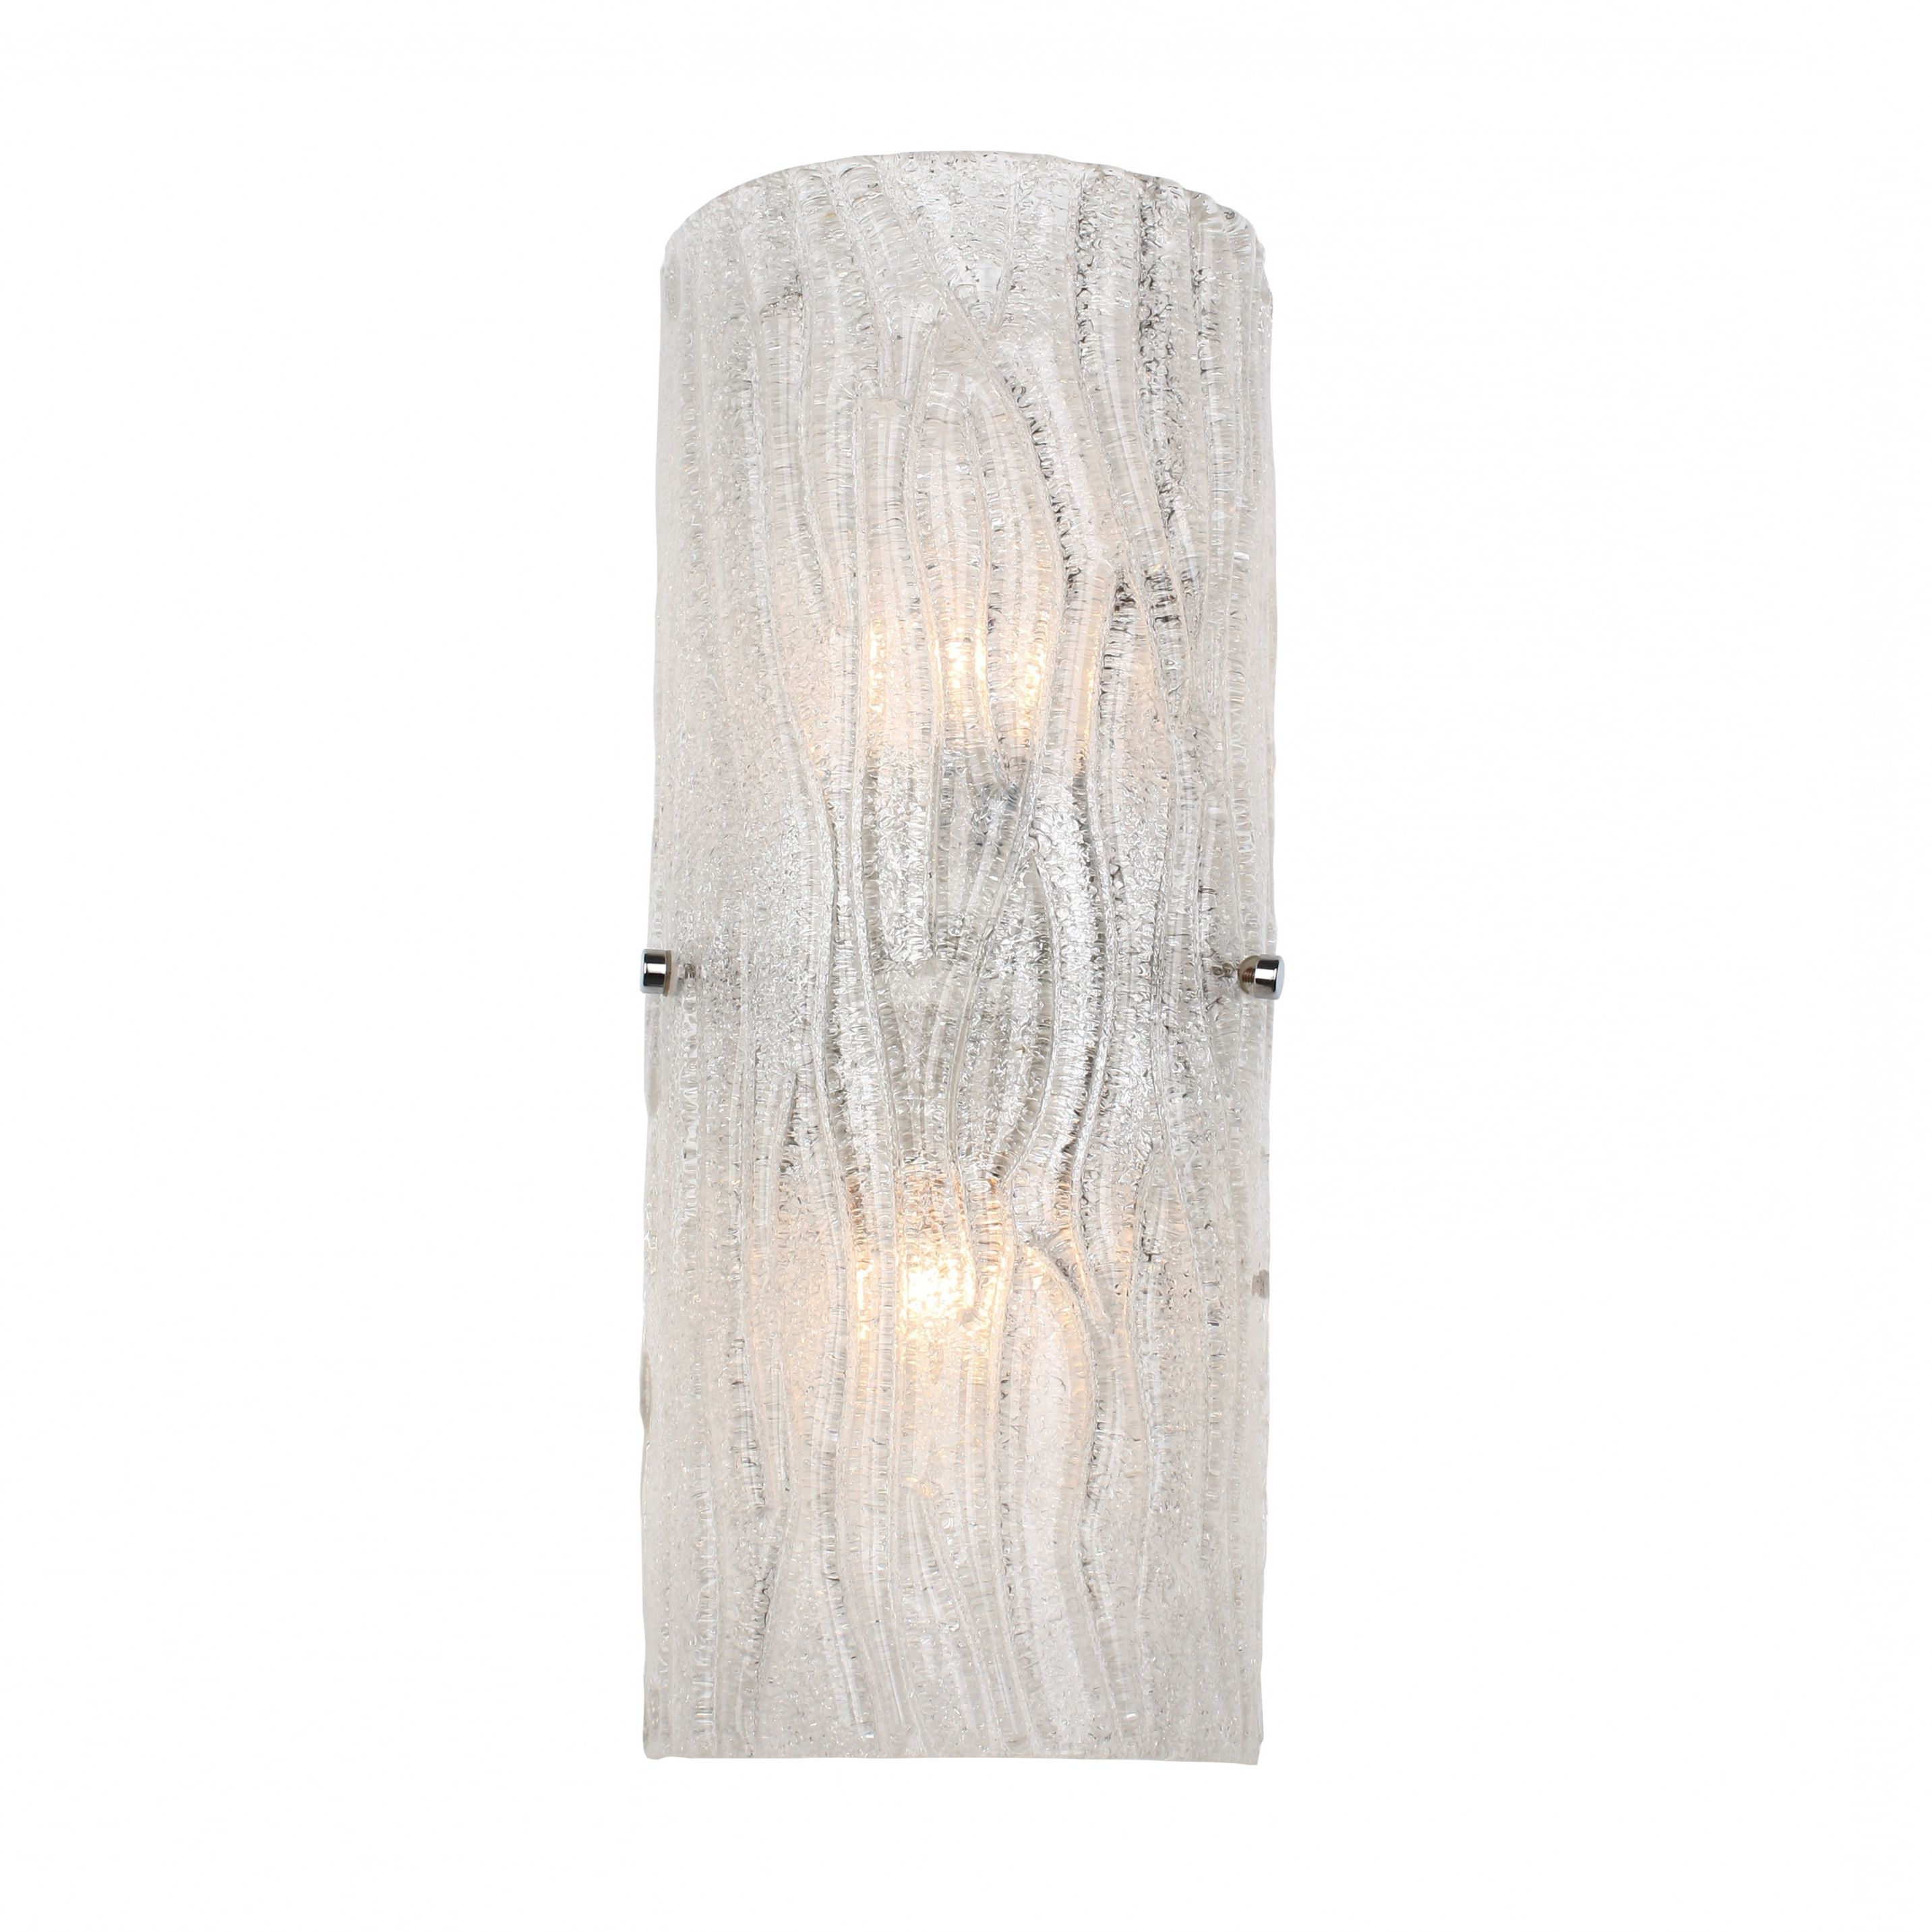 Outdoor Wall Lighting Wayfair 1 Light Sconce Iranews Beach Themed For Most Up To Date Beach Outdoor Wall Lighting (View 15 of 20)